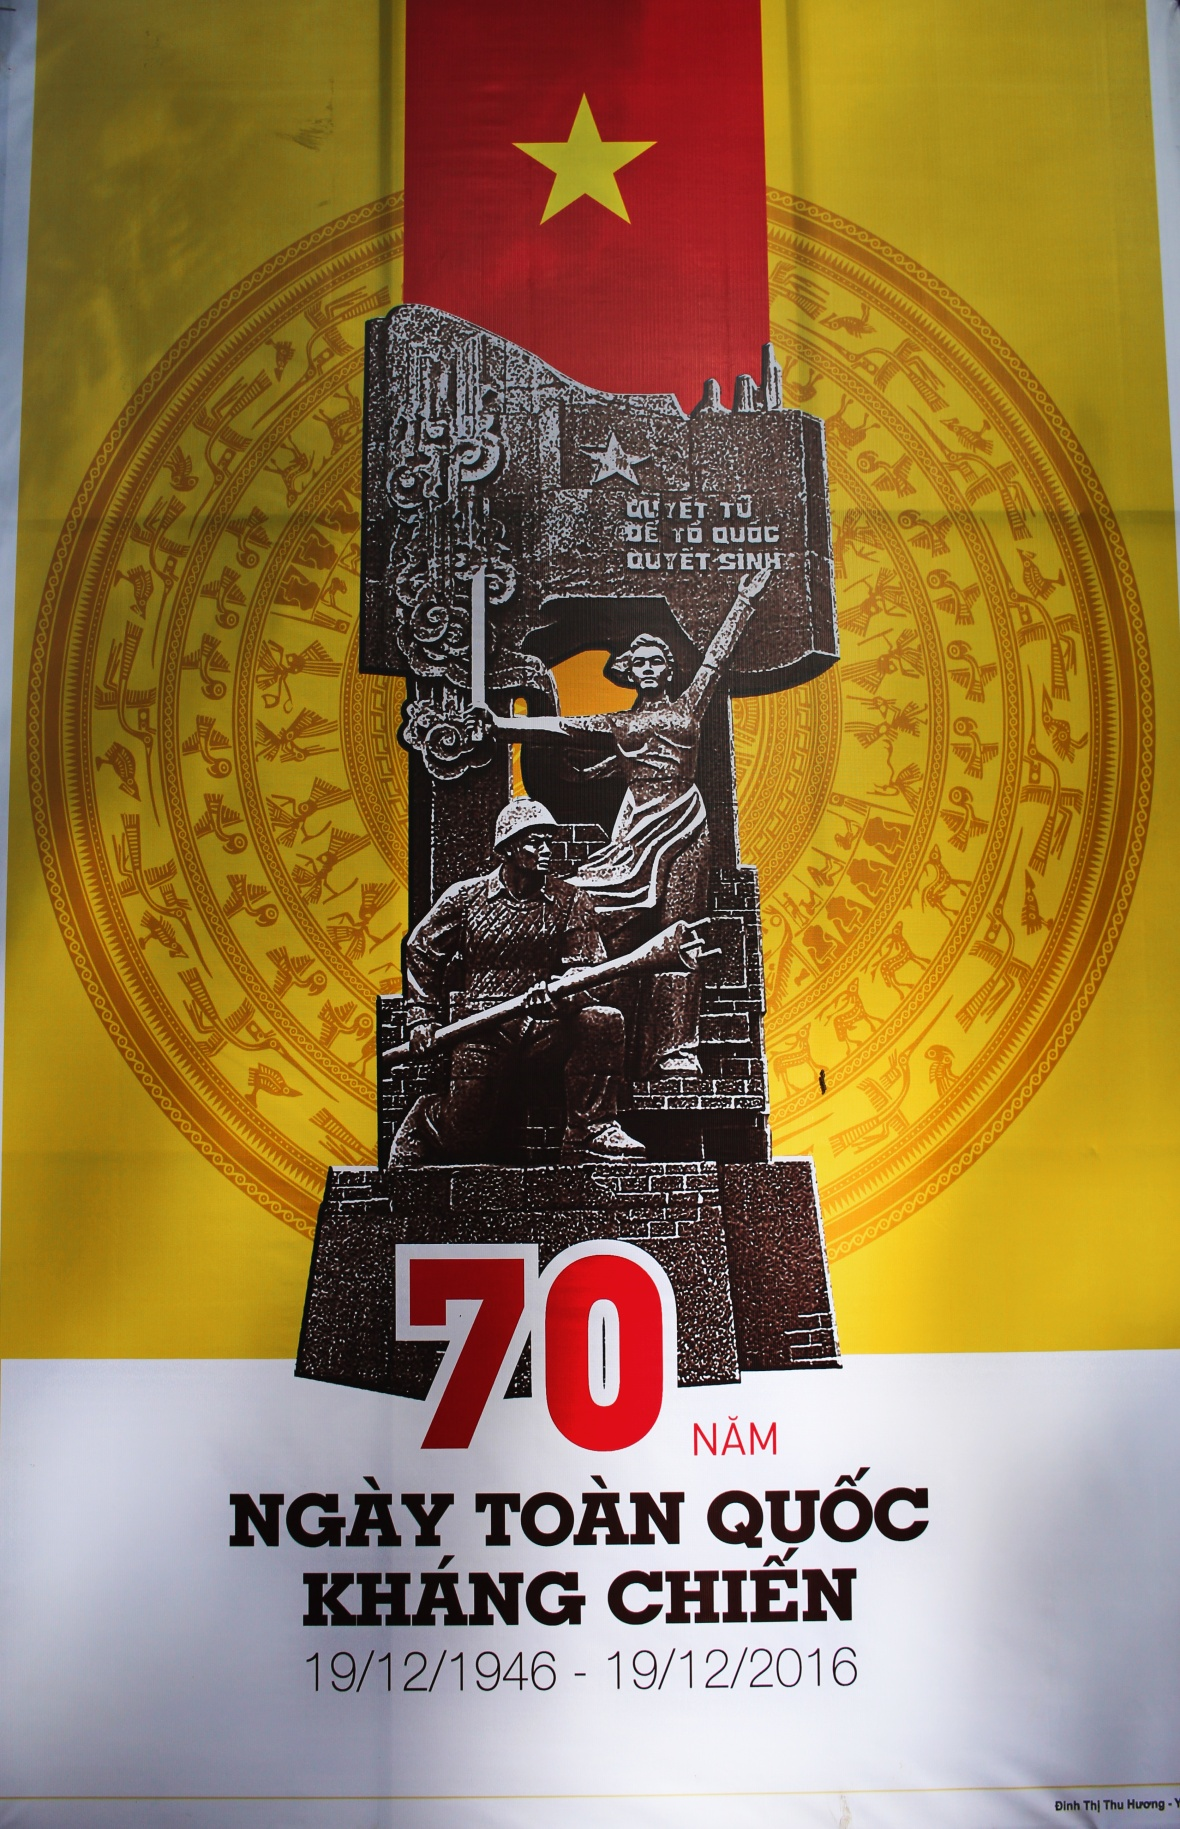 affiches-propagande-hochiminh-monument-8